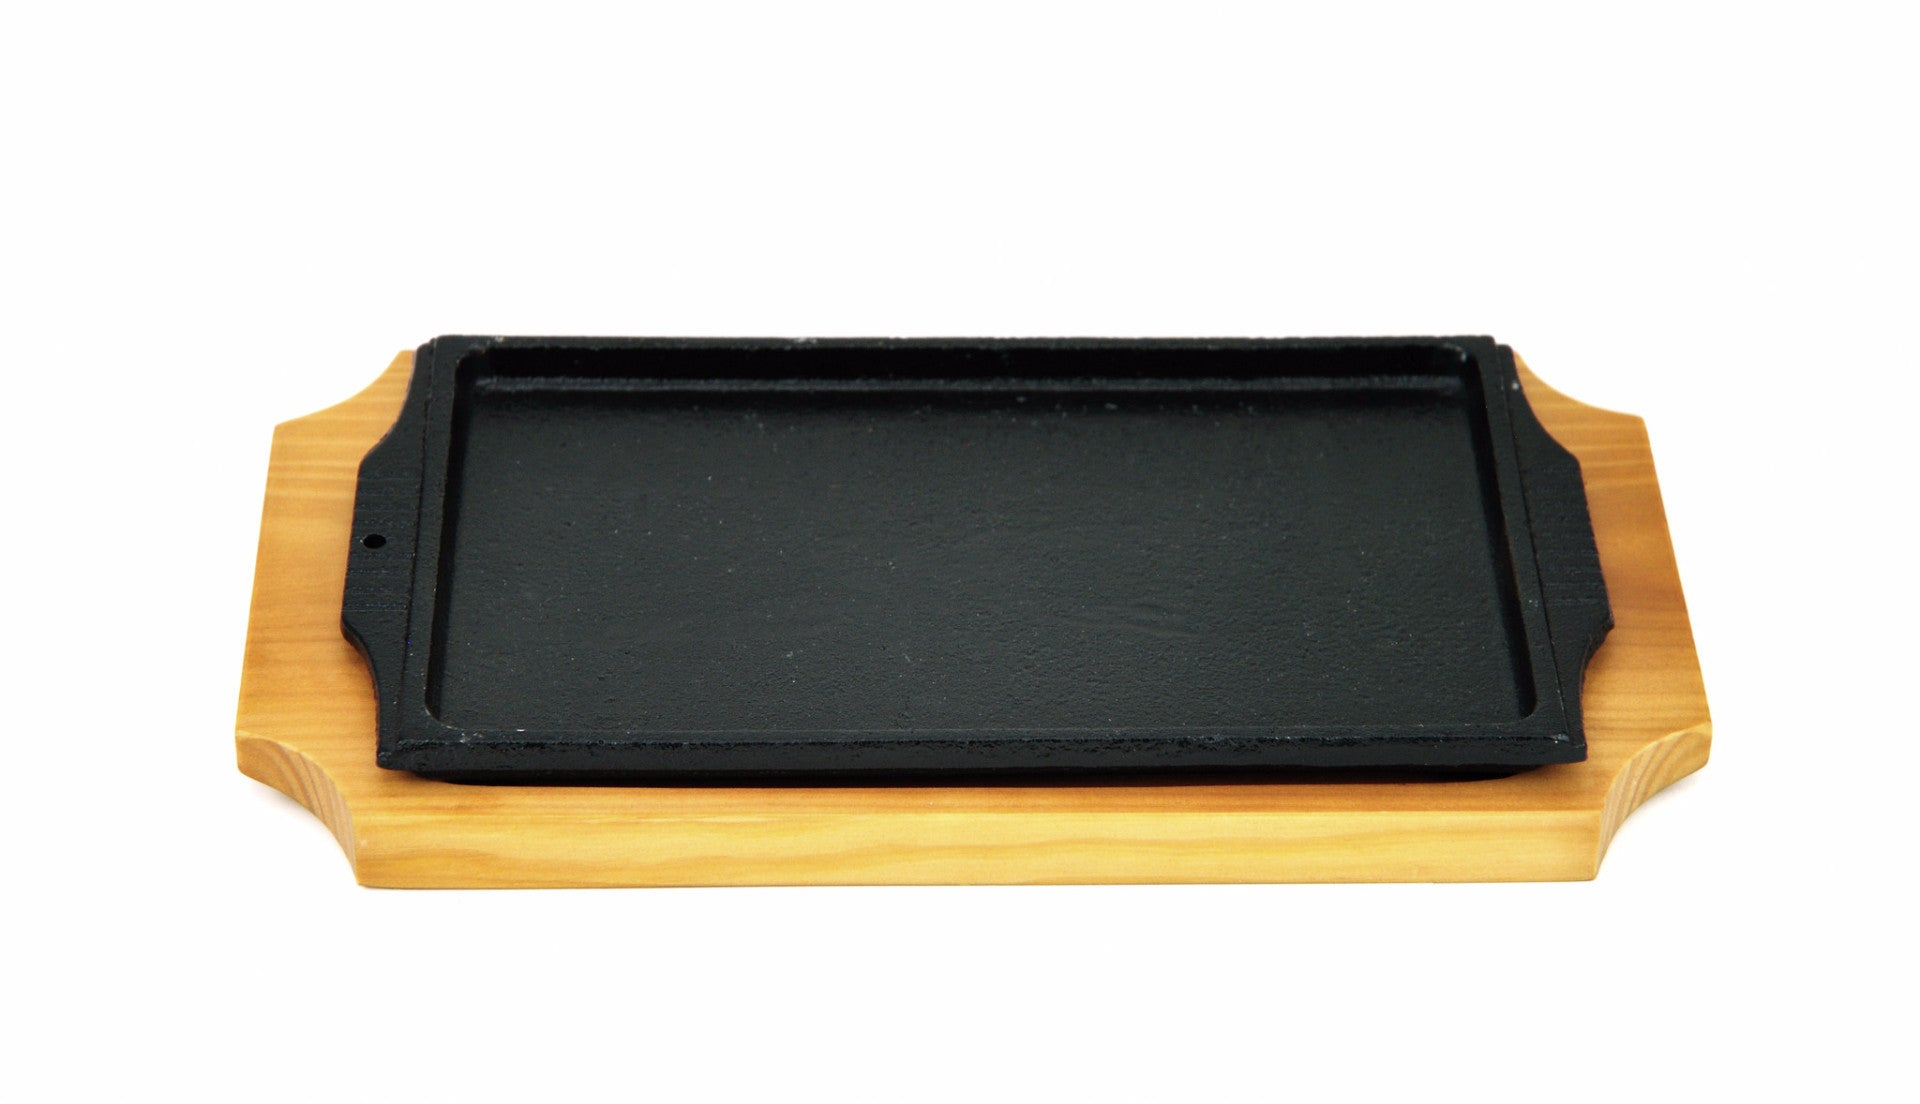 Korean Cast Iron Barbecue Sizzling Plate, Rectangle 구형 무쇠 판 (Case-12pcs), Cast Iron - eKitchenary